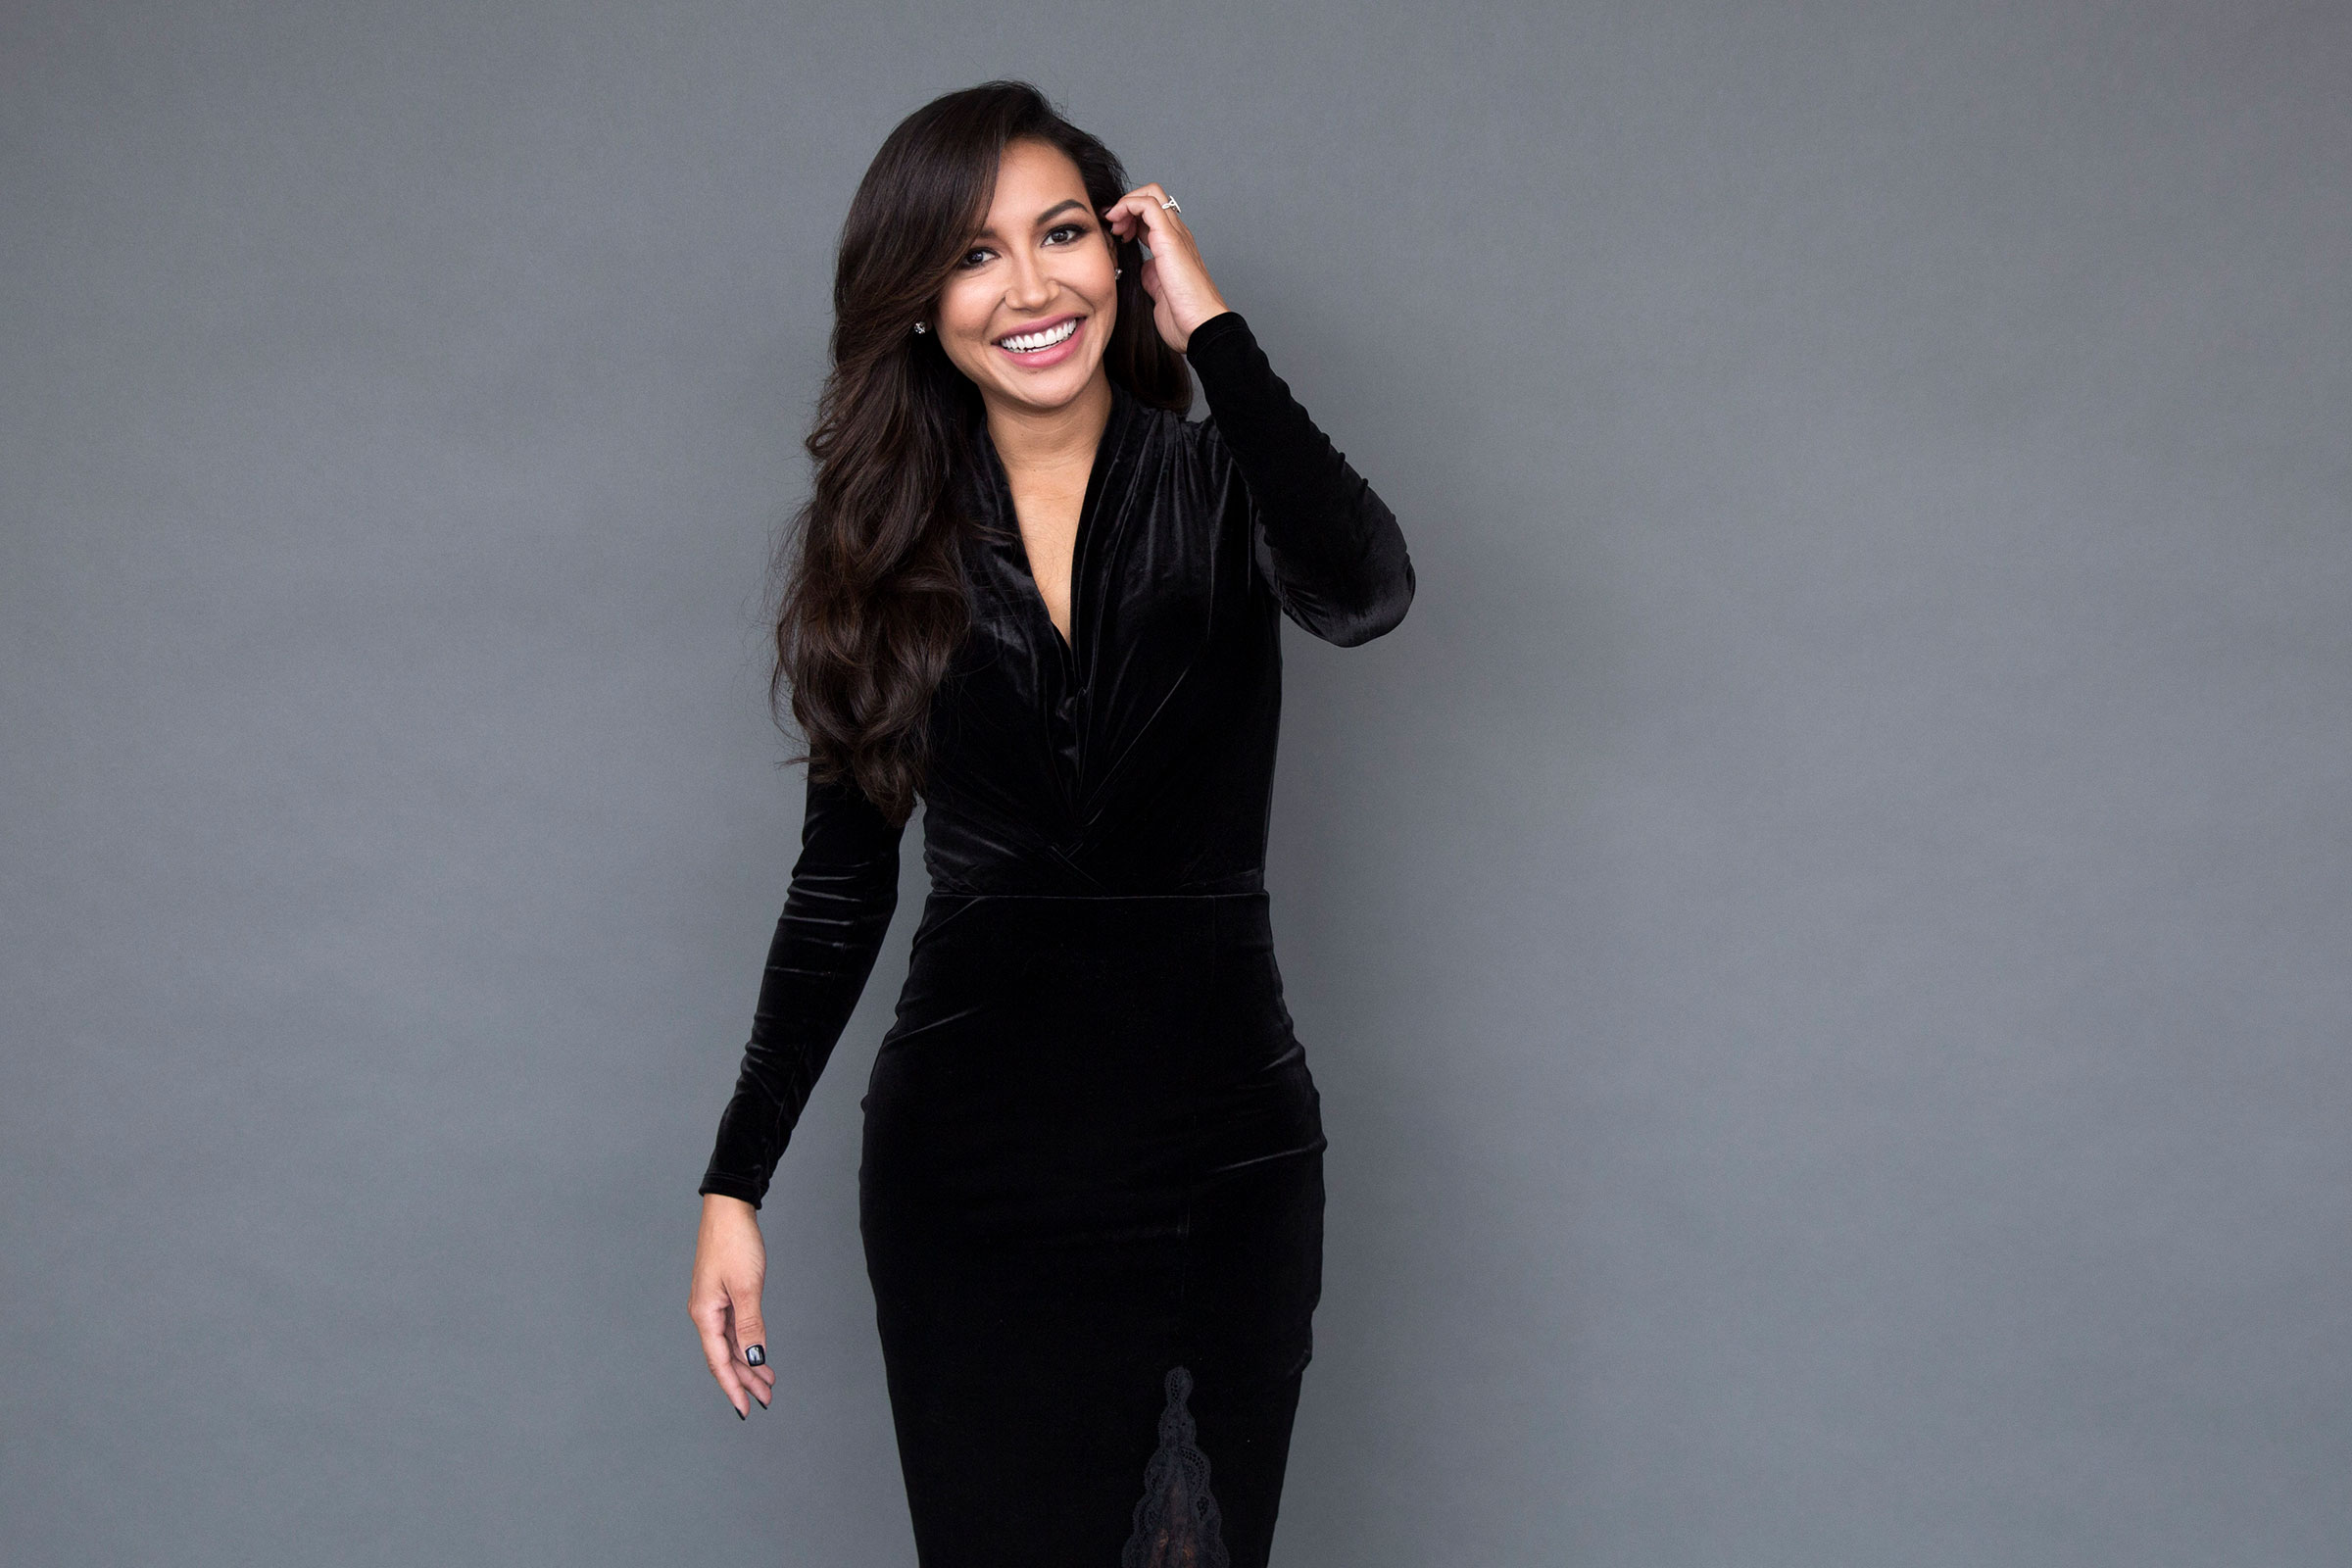 Naya Rivera poses for a portrait in New York on Aug. 31, 2016.